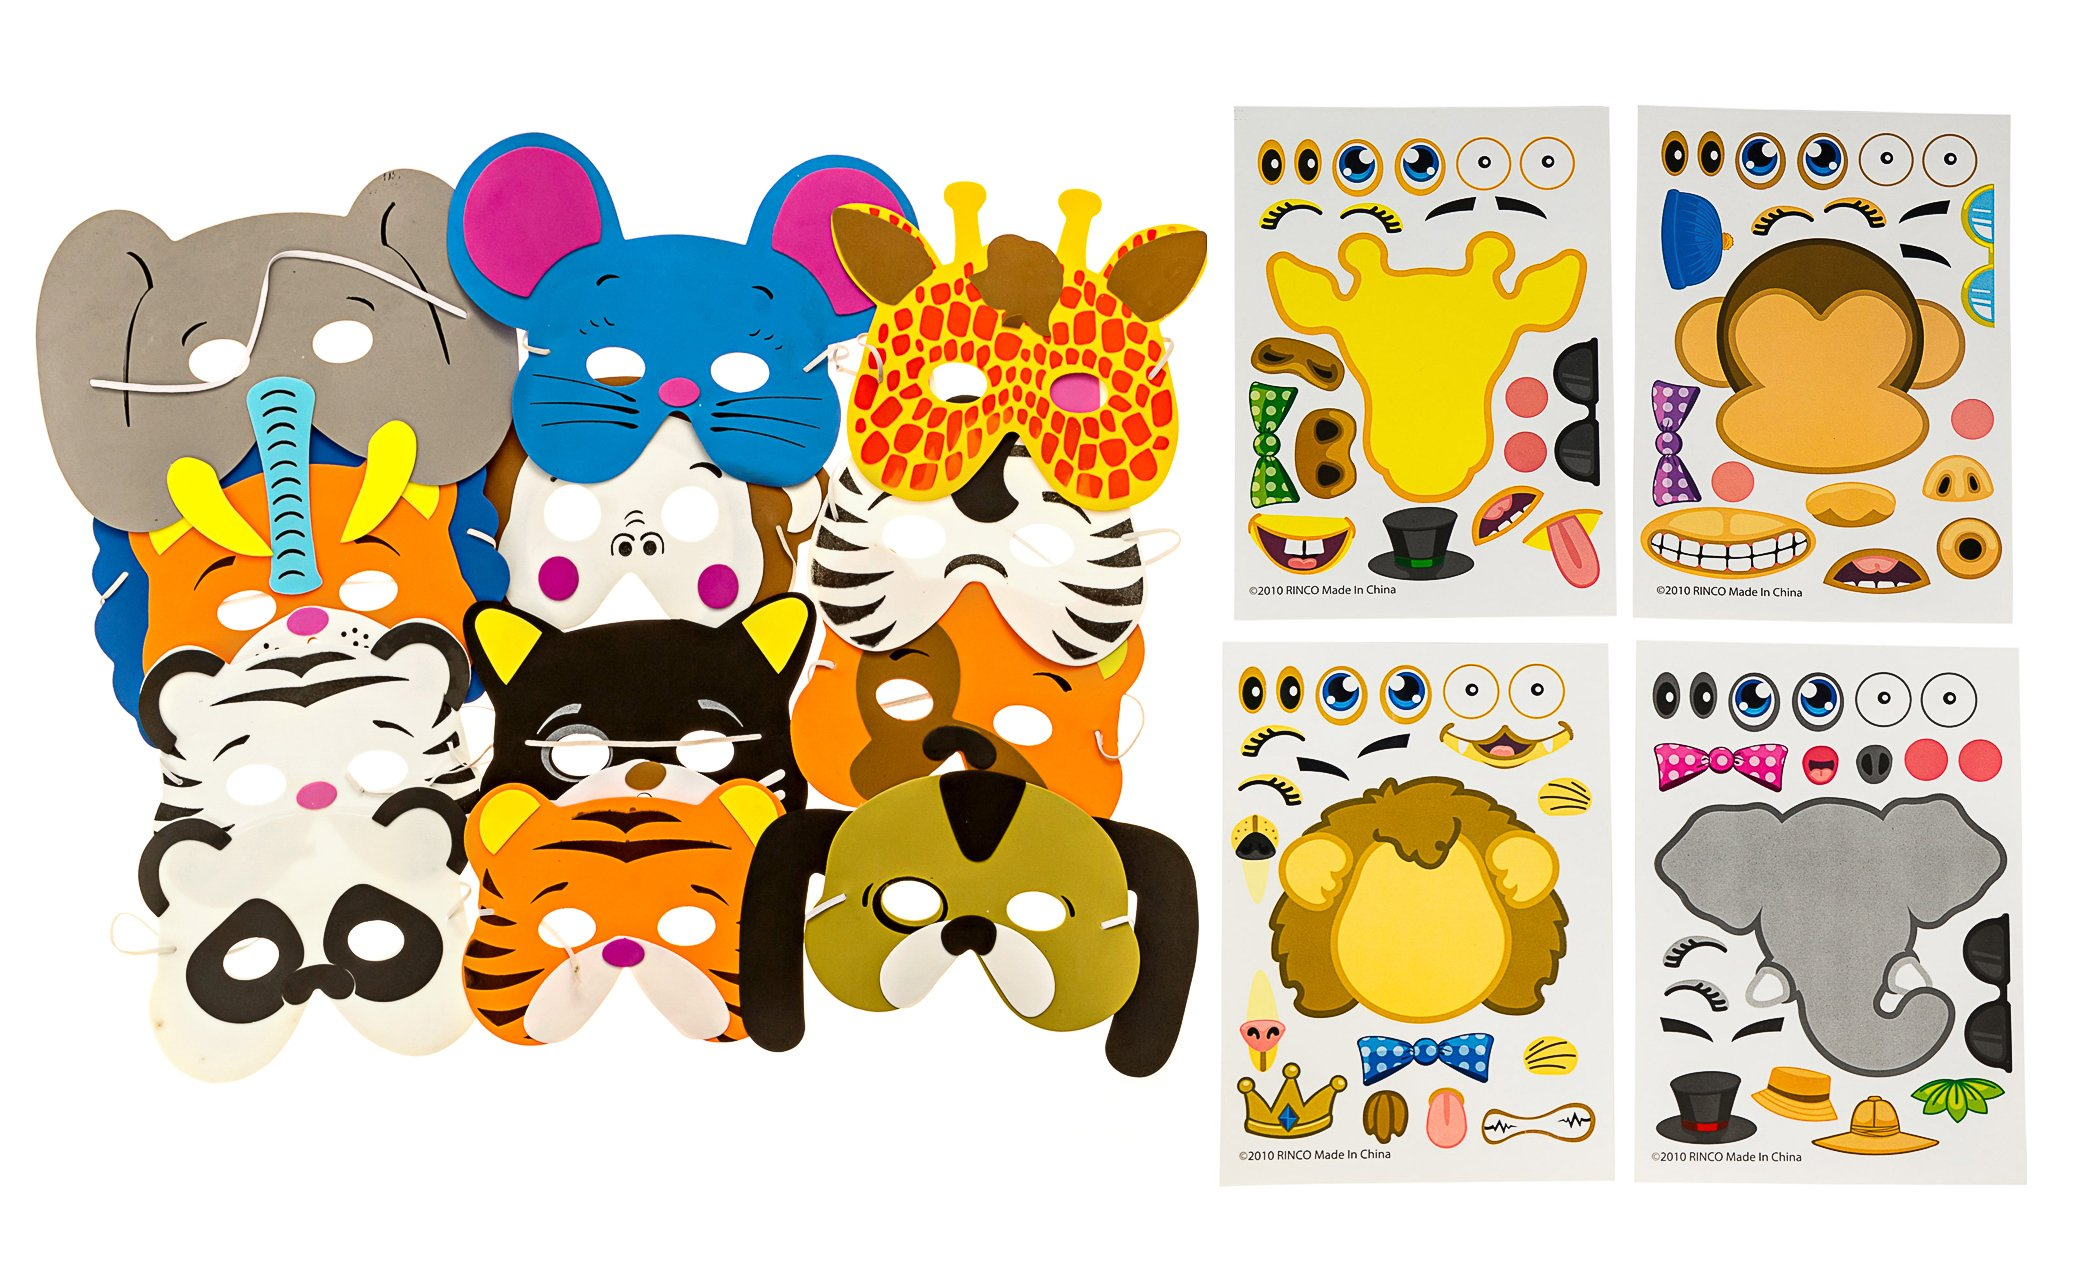 M & M Products Online 48 Piece Animal Sticker & Foam Mask Set: 24 Make-A-Zoo Sticker Sheets & 24 Assorted Form Animal Masks Value Party Favor Set - Great For A Zoo And Safari Theme Birthday Party